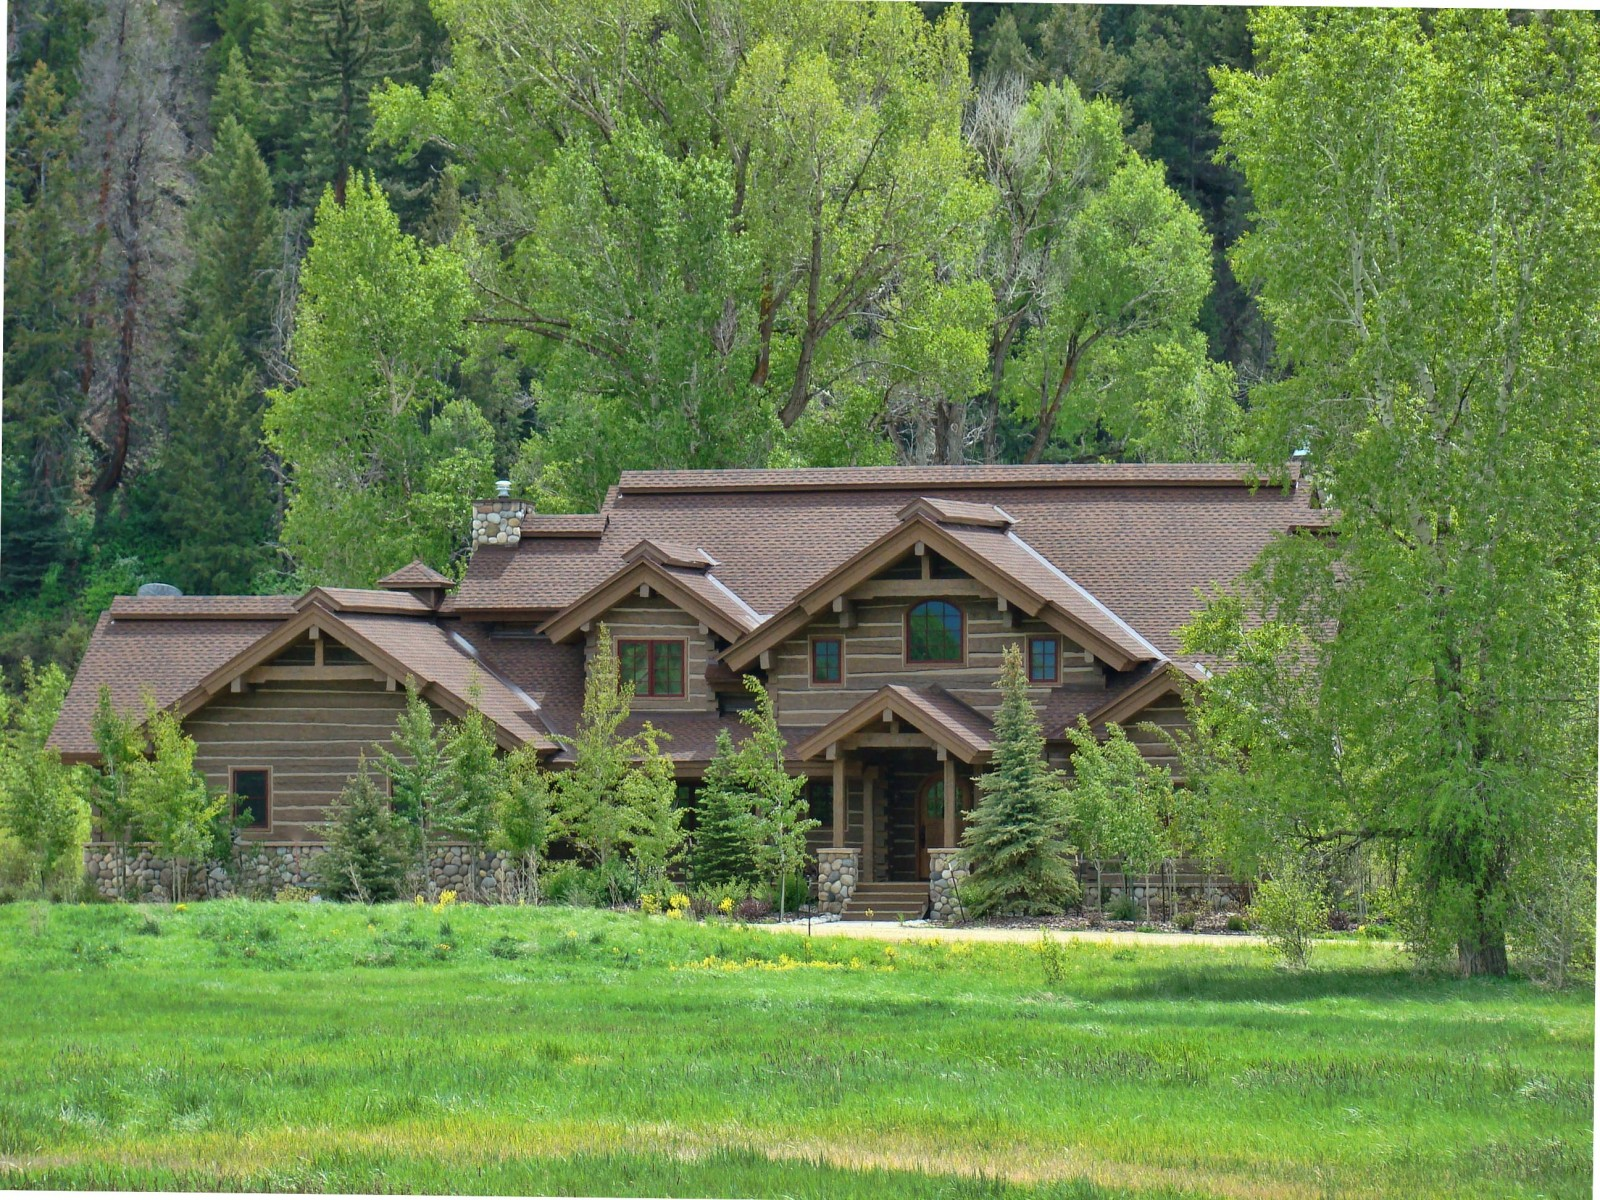 Sand Hand hewn dovetail log Steamboat Springs Colorado custom home builder handcrafted (4) - Deerwood Log Homes - Custom Built Homes and Cabins - Laramie, Wyoming and The Centennial Valley - deer-wood.com - (307) 742-6554